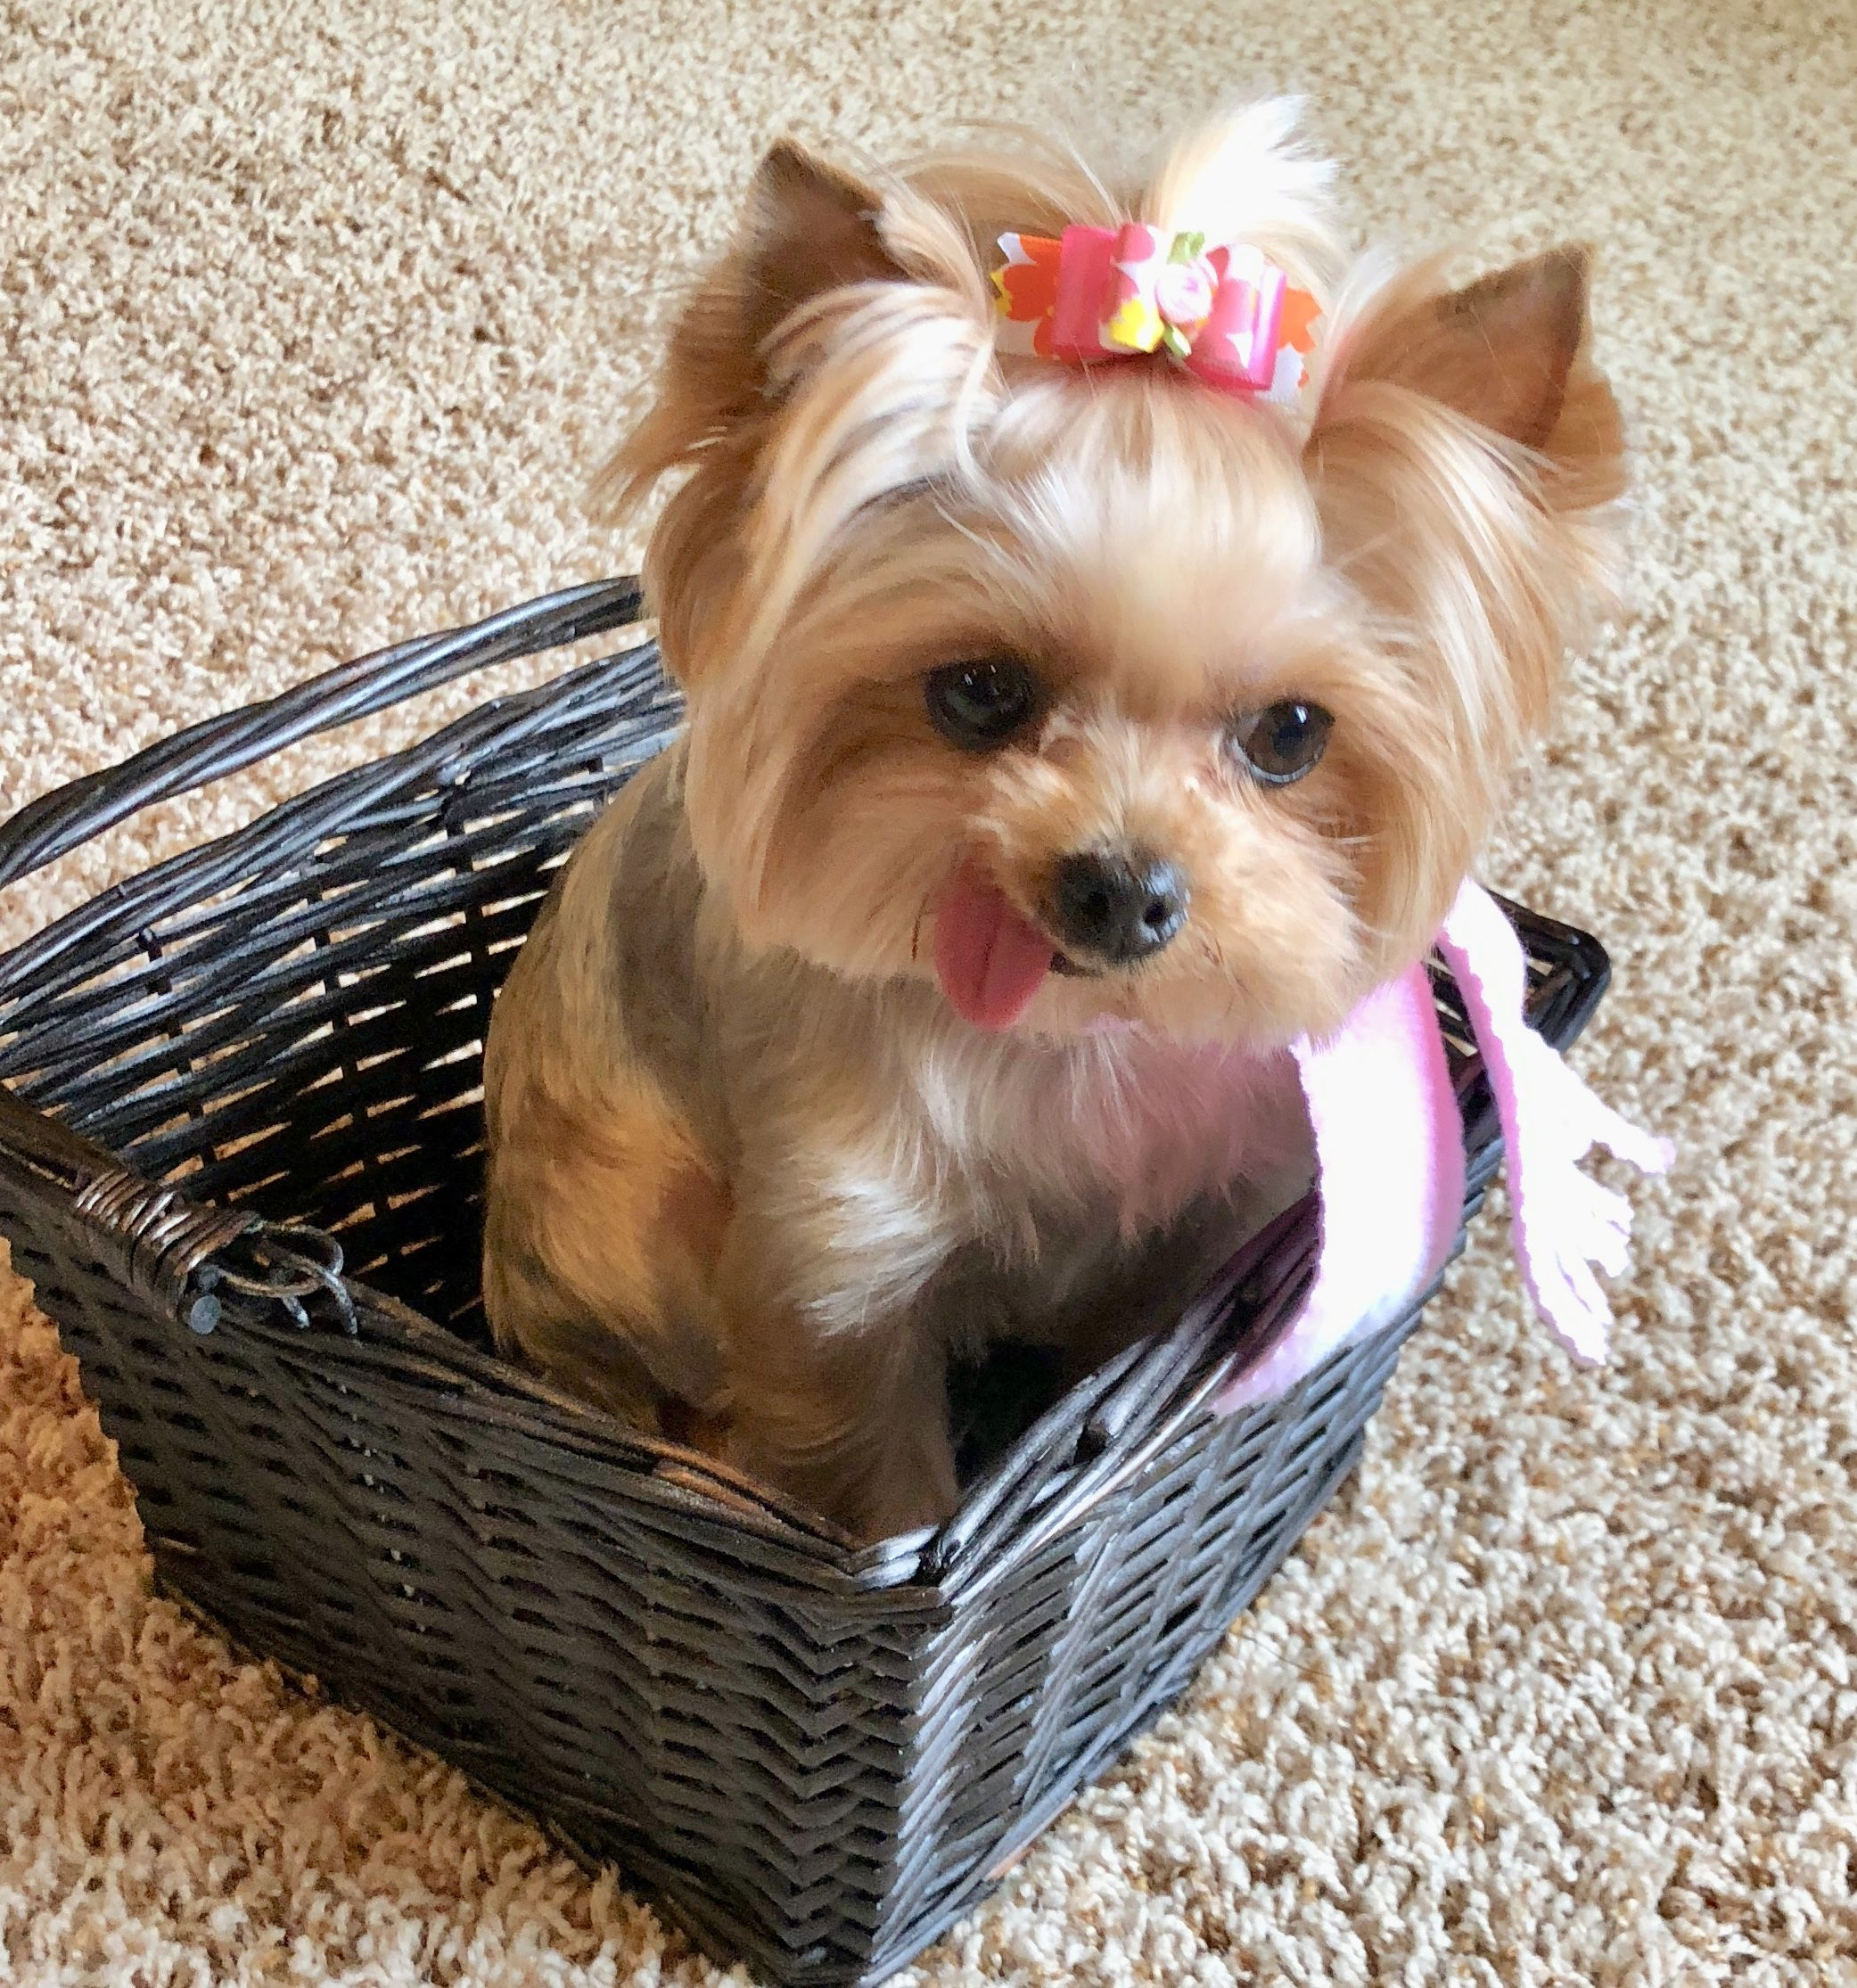 Basket Full Of Yorkie Zoe Yorkshire Terrier Pink Scarf Yorkshireterrier Yorkshire Terrier Puppies Yorkshire Terrier Yorkie Puppy